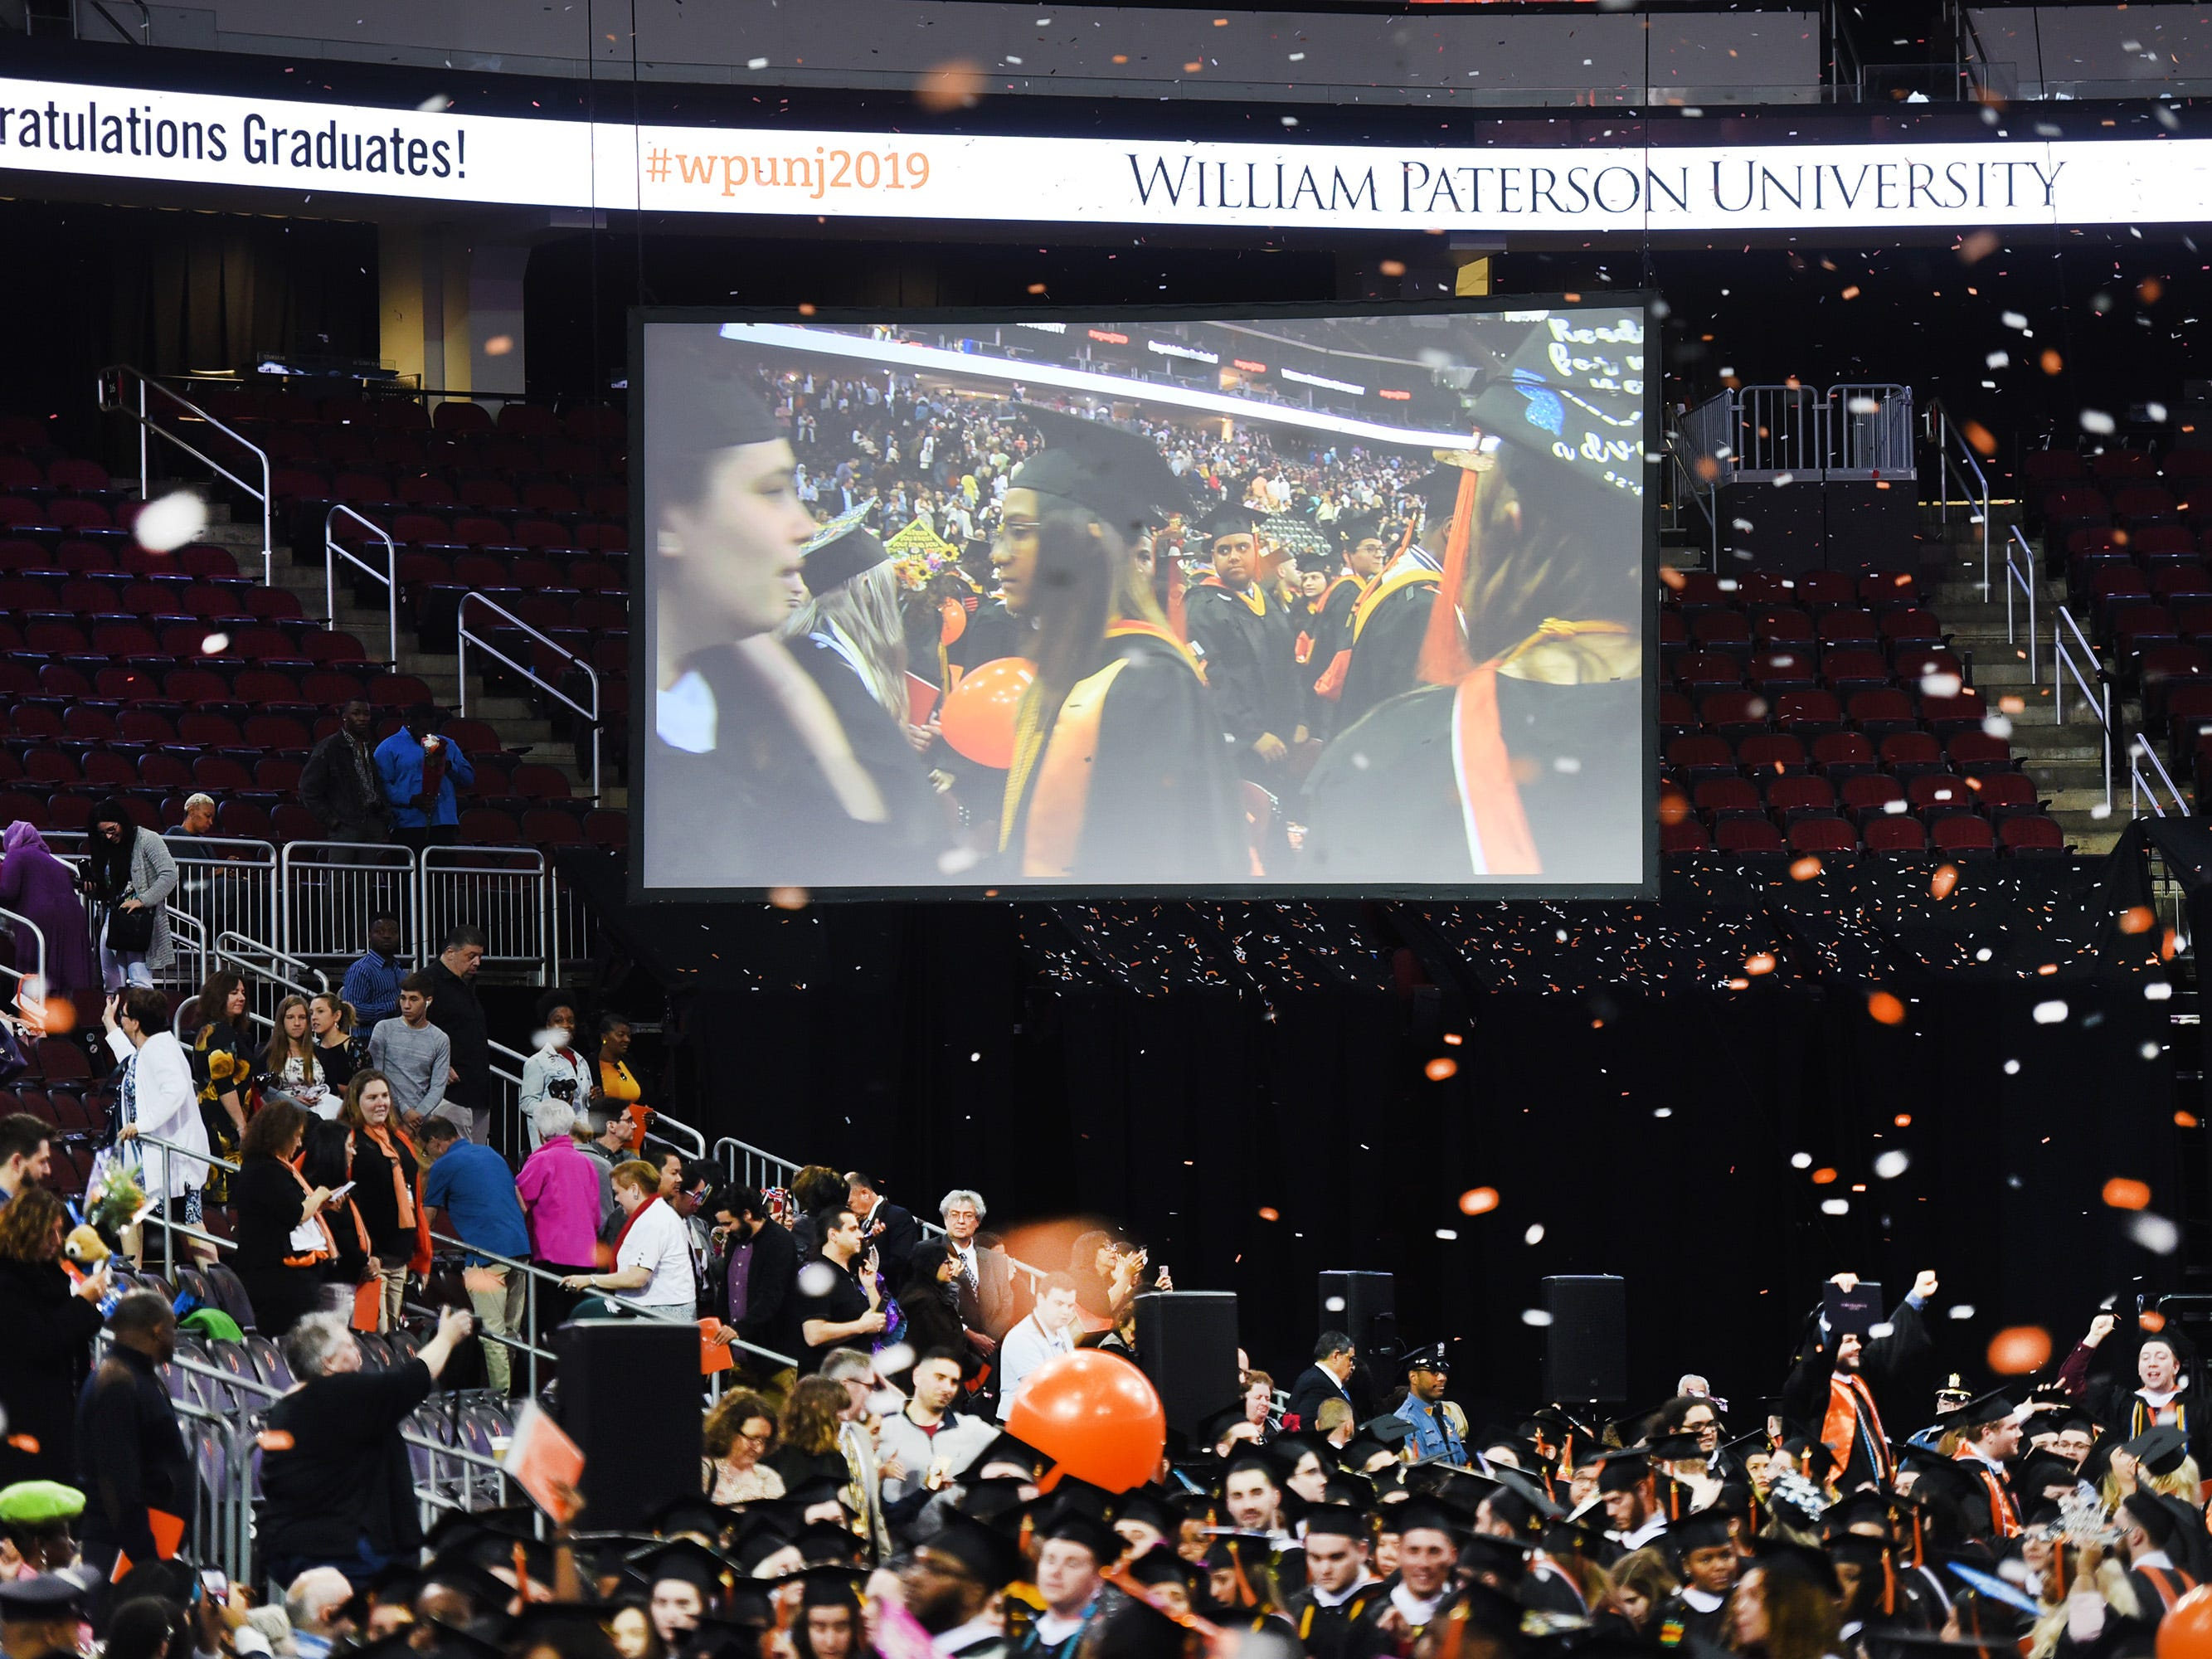 Confetti rains down on the graduates during the William Paterson University 2019 Commencement at the Prudential Center in Newark on 05/15/19.